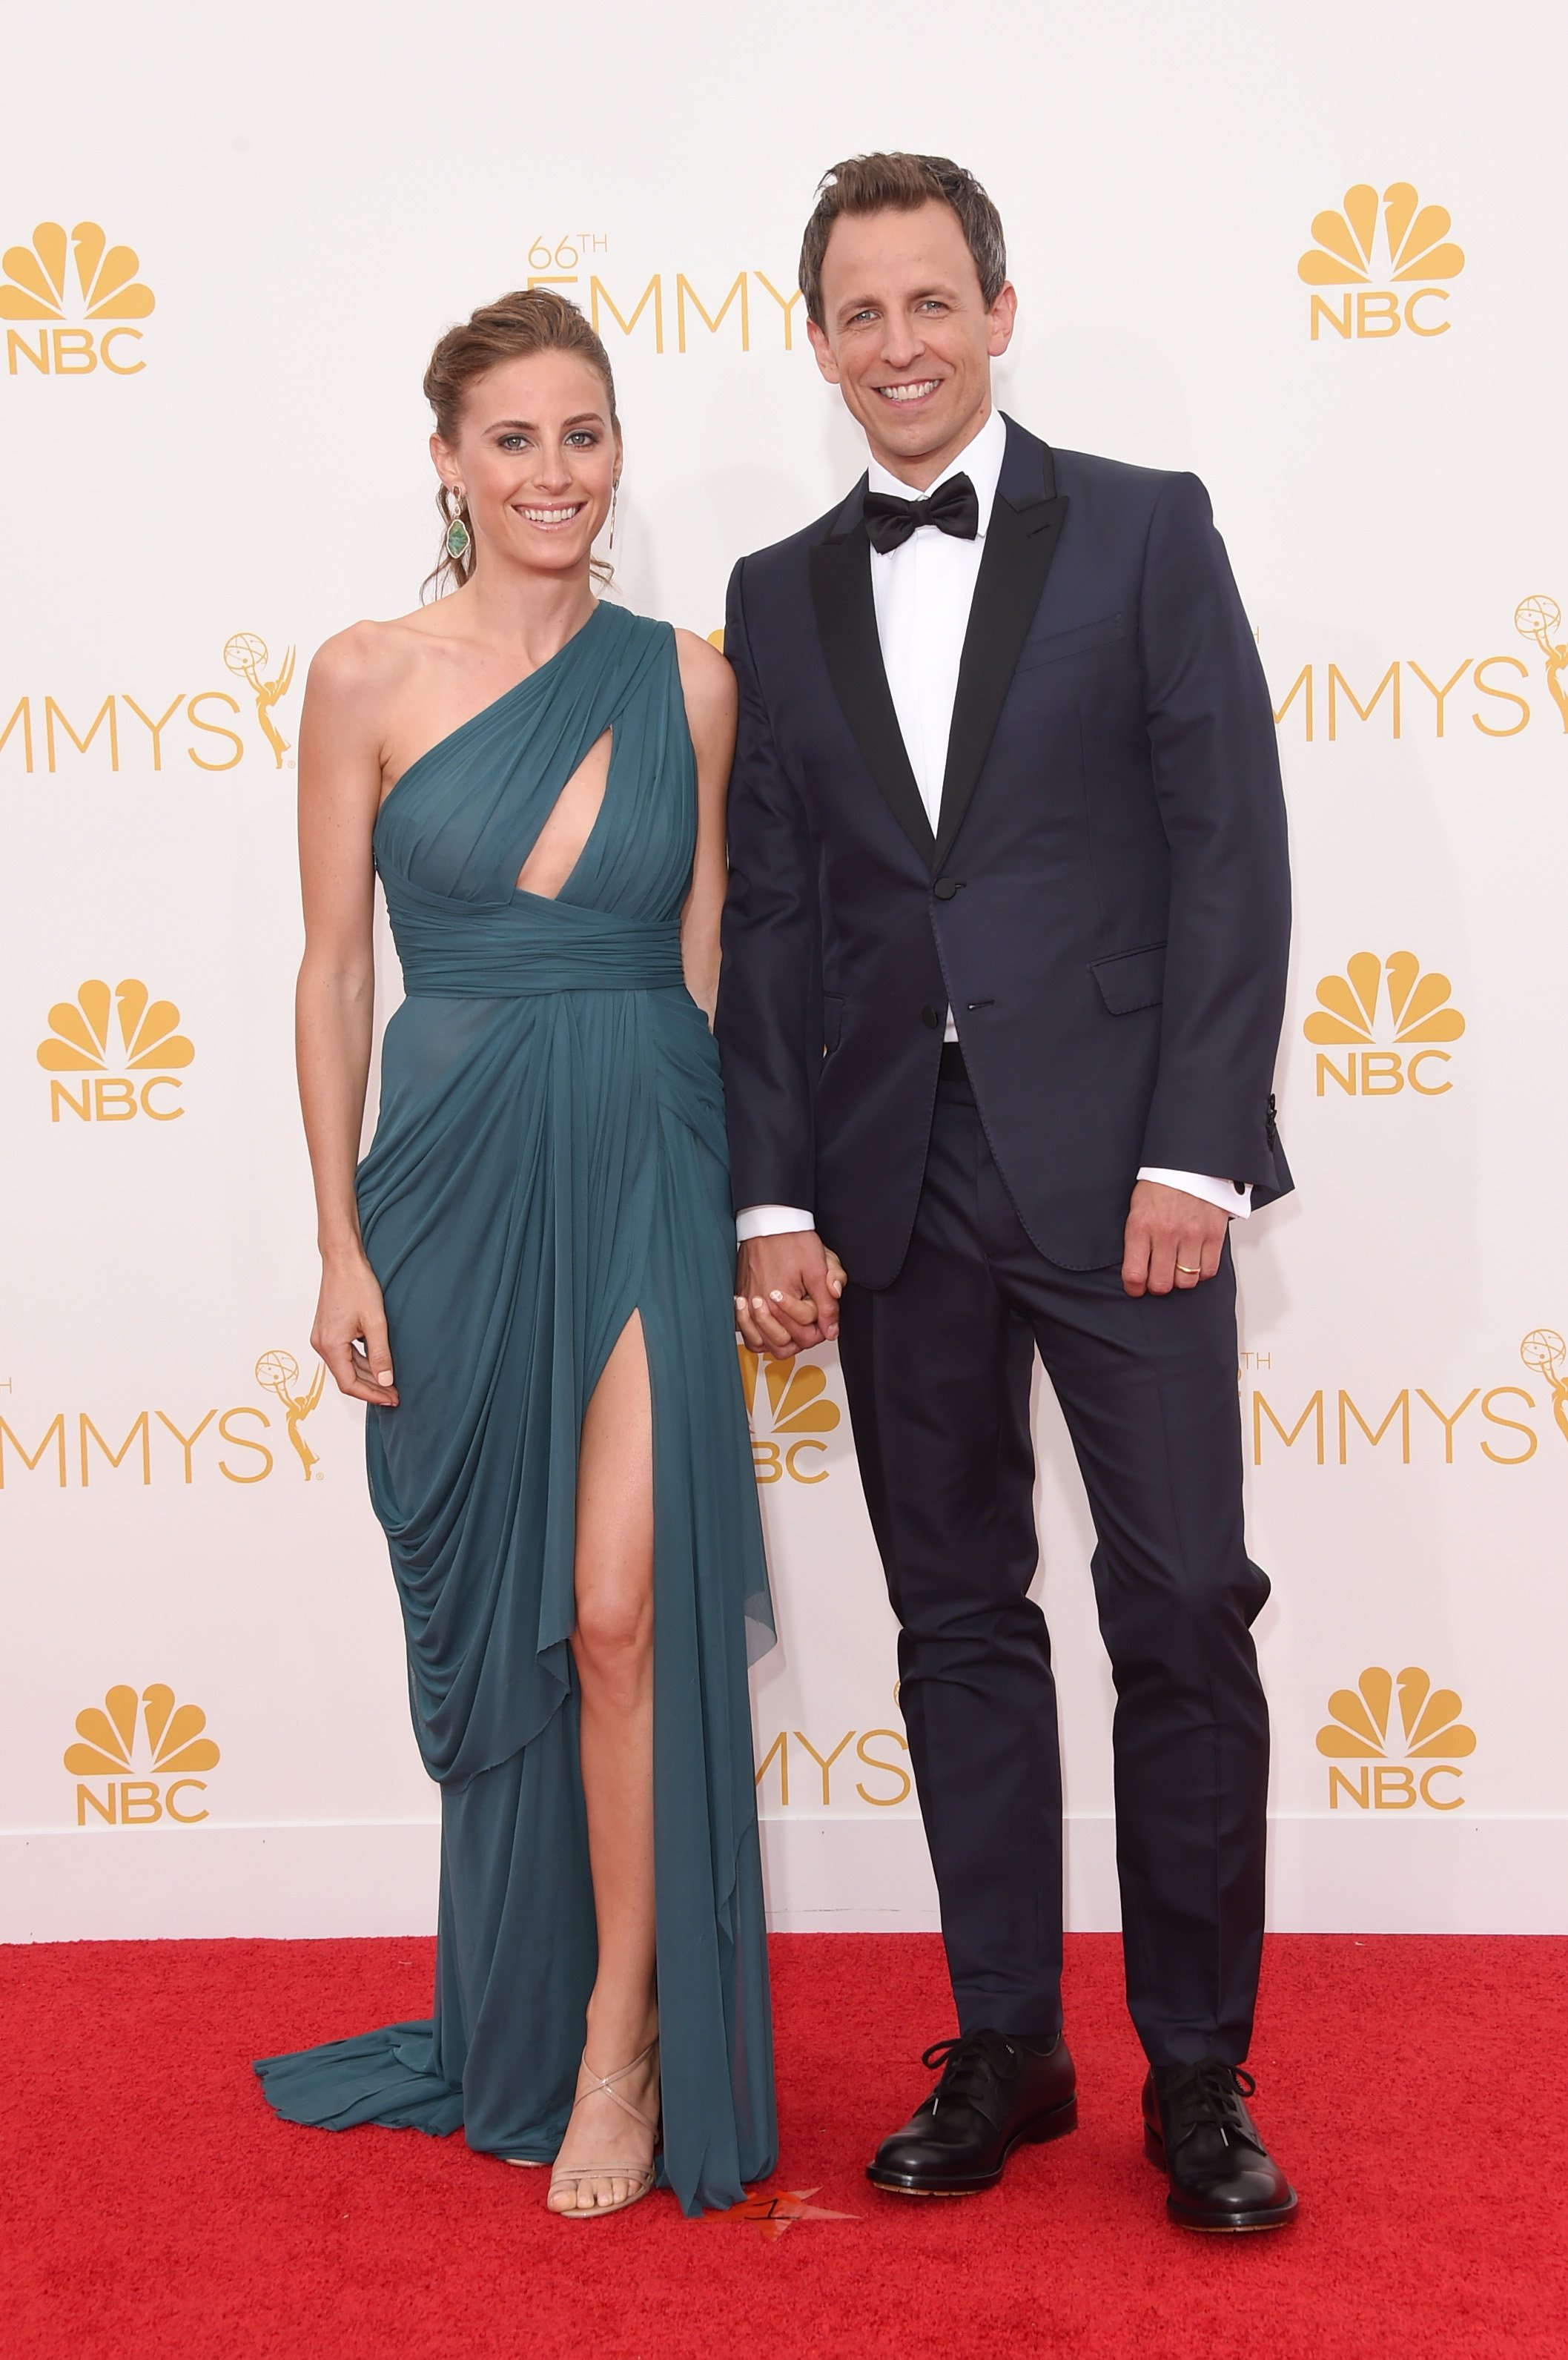 Host Seth Meyers and Alexi Ashe attend the 66th Annual Primetime Emmy Awards held at Nokia Theatre L.A. Live on August 25, 2014 in Los Angeles, California.